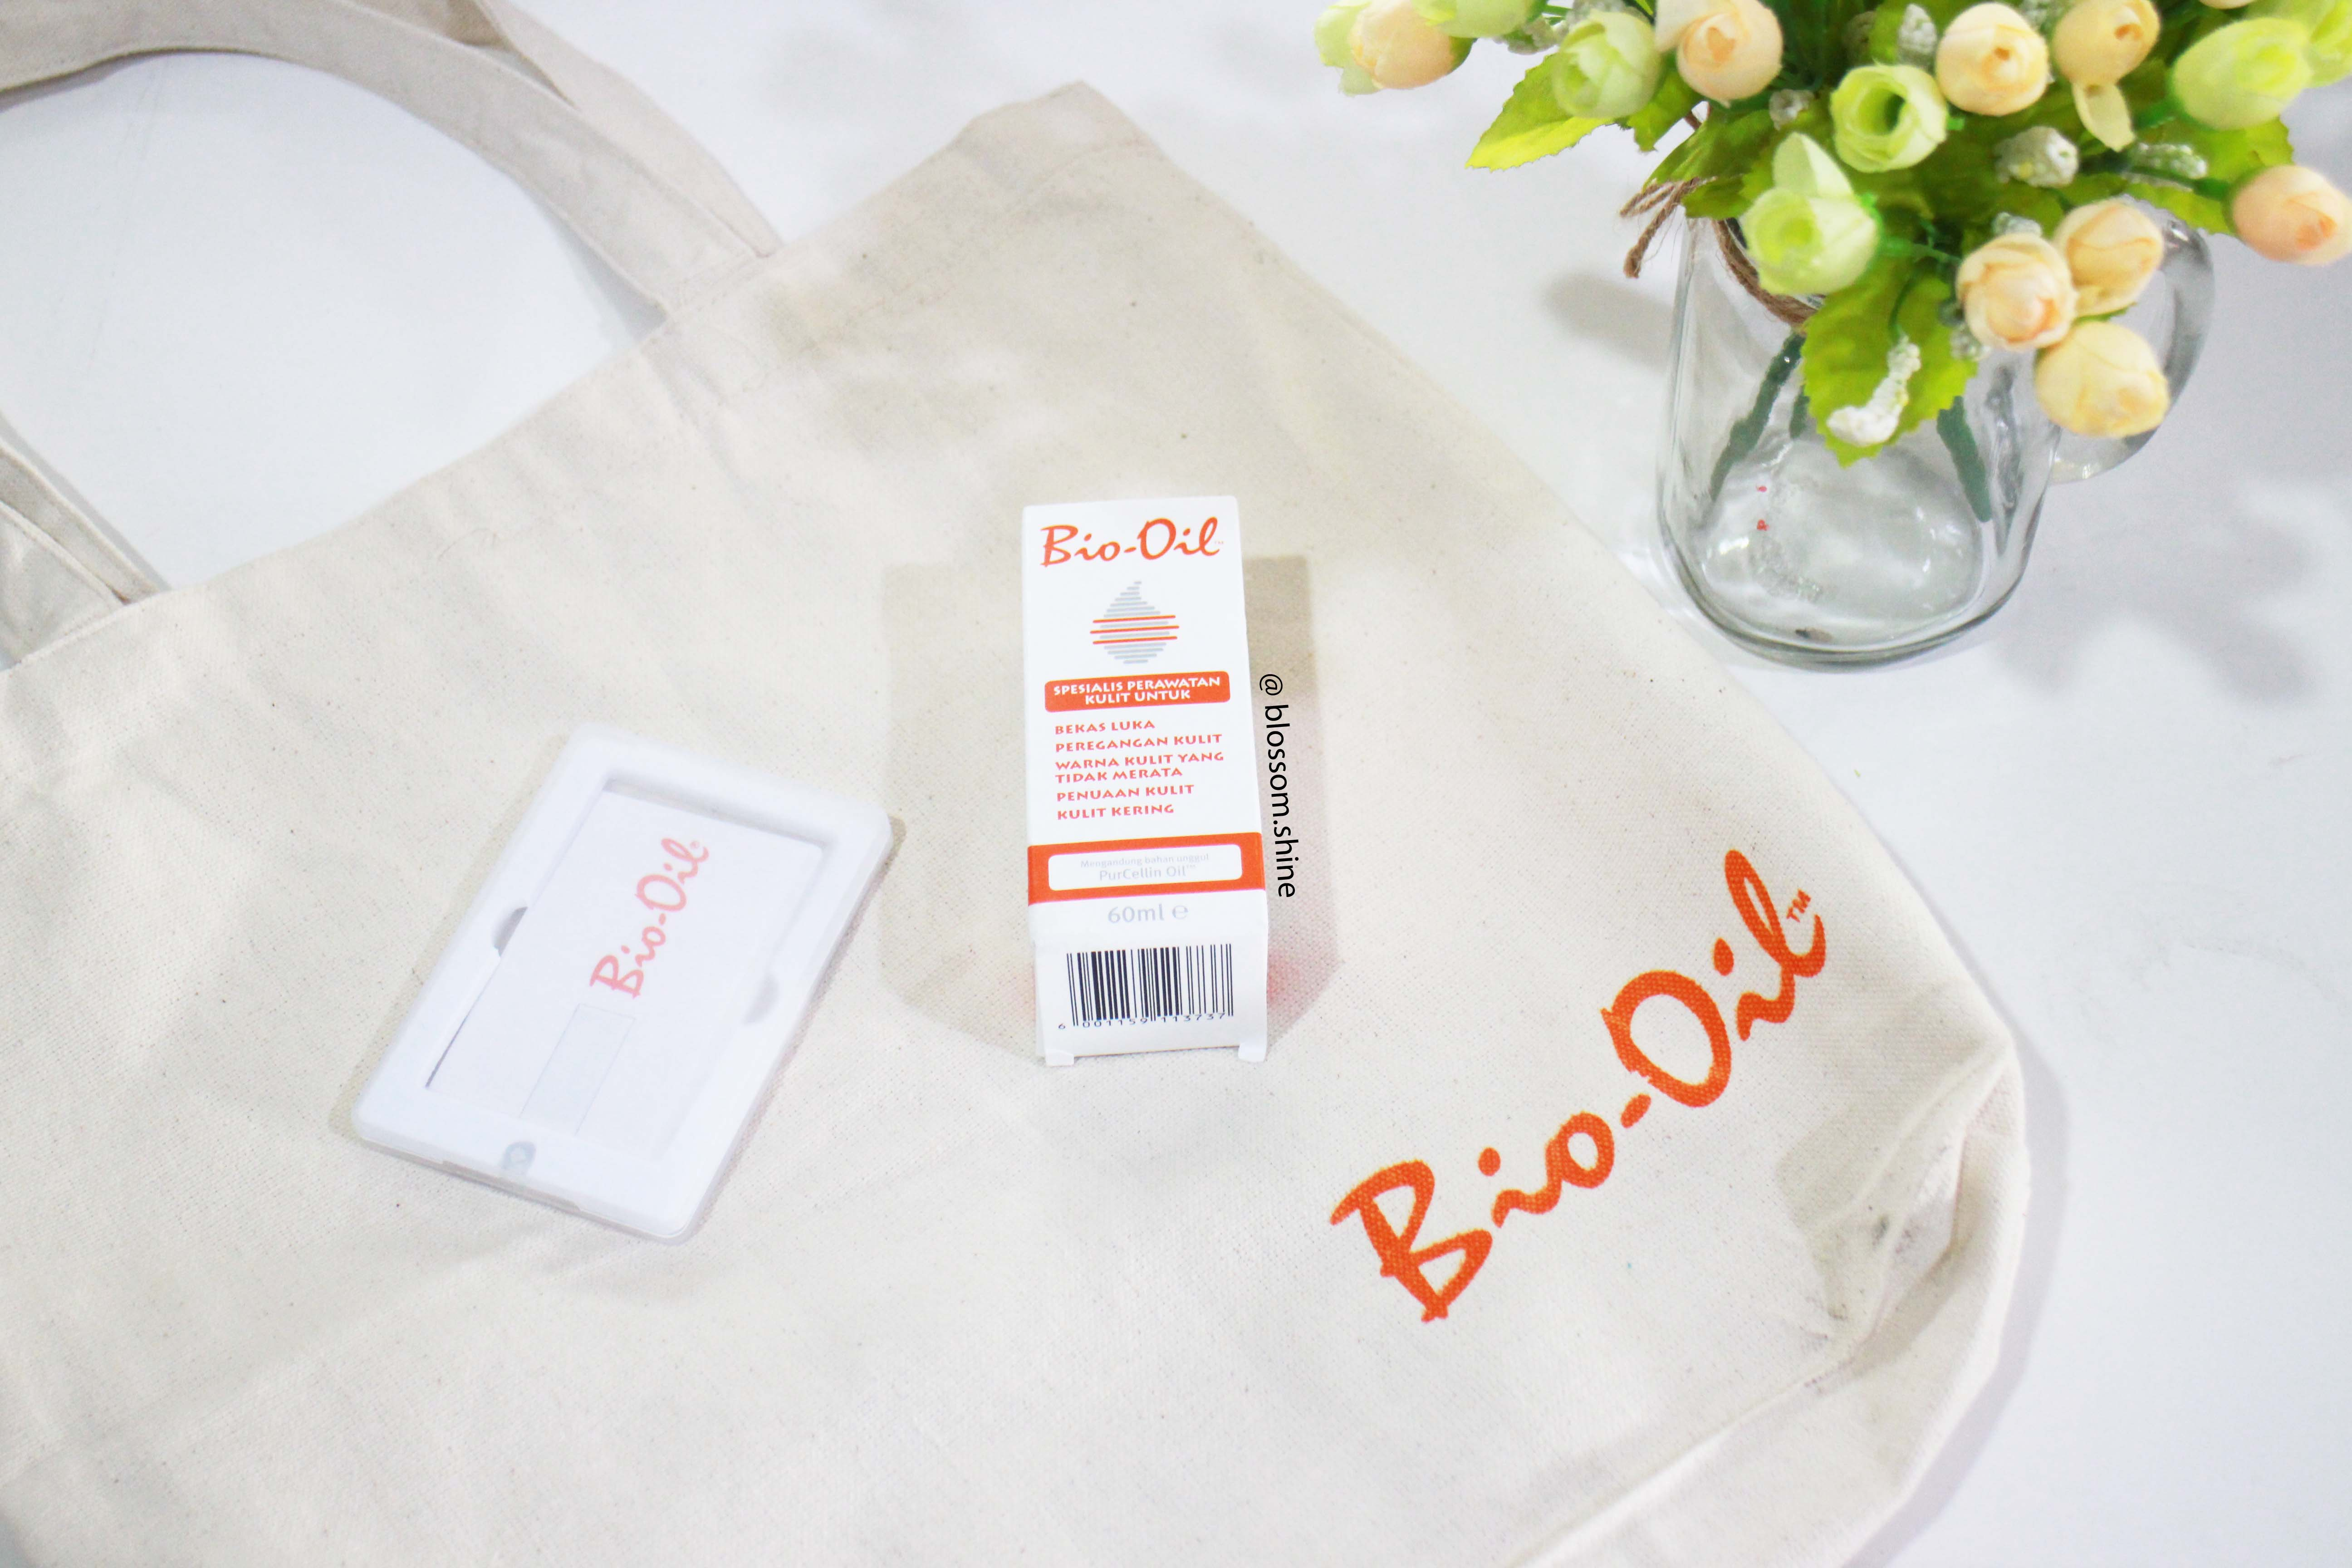 Bio-Oil Beauty Regime [SKINCARE REVIEW]